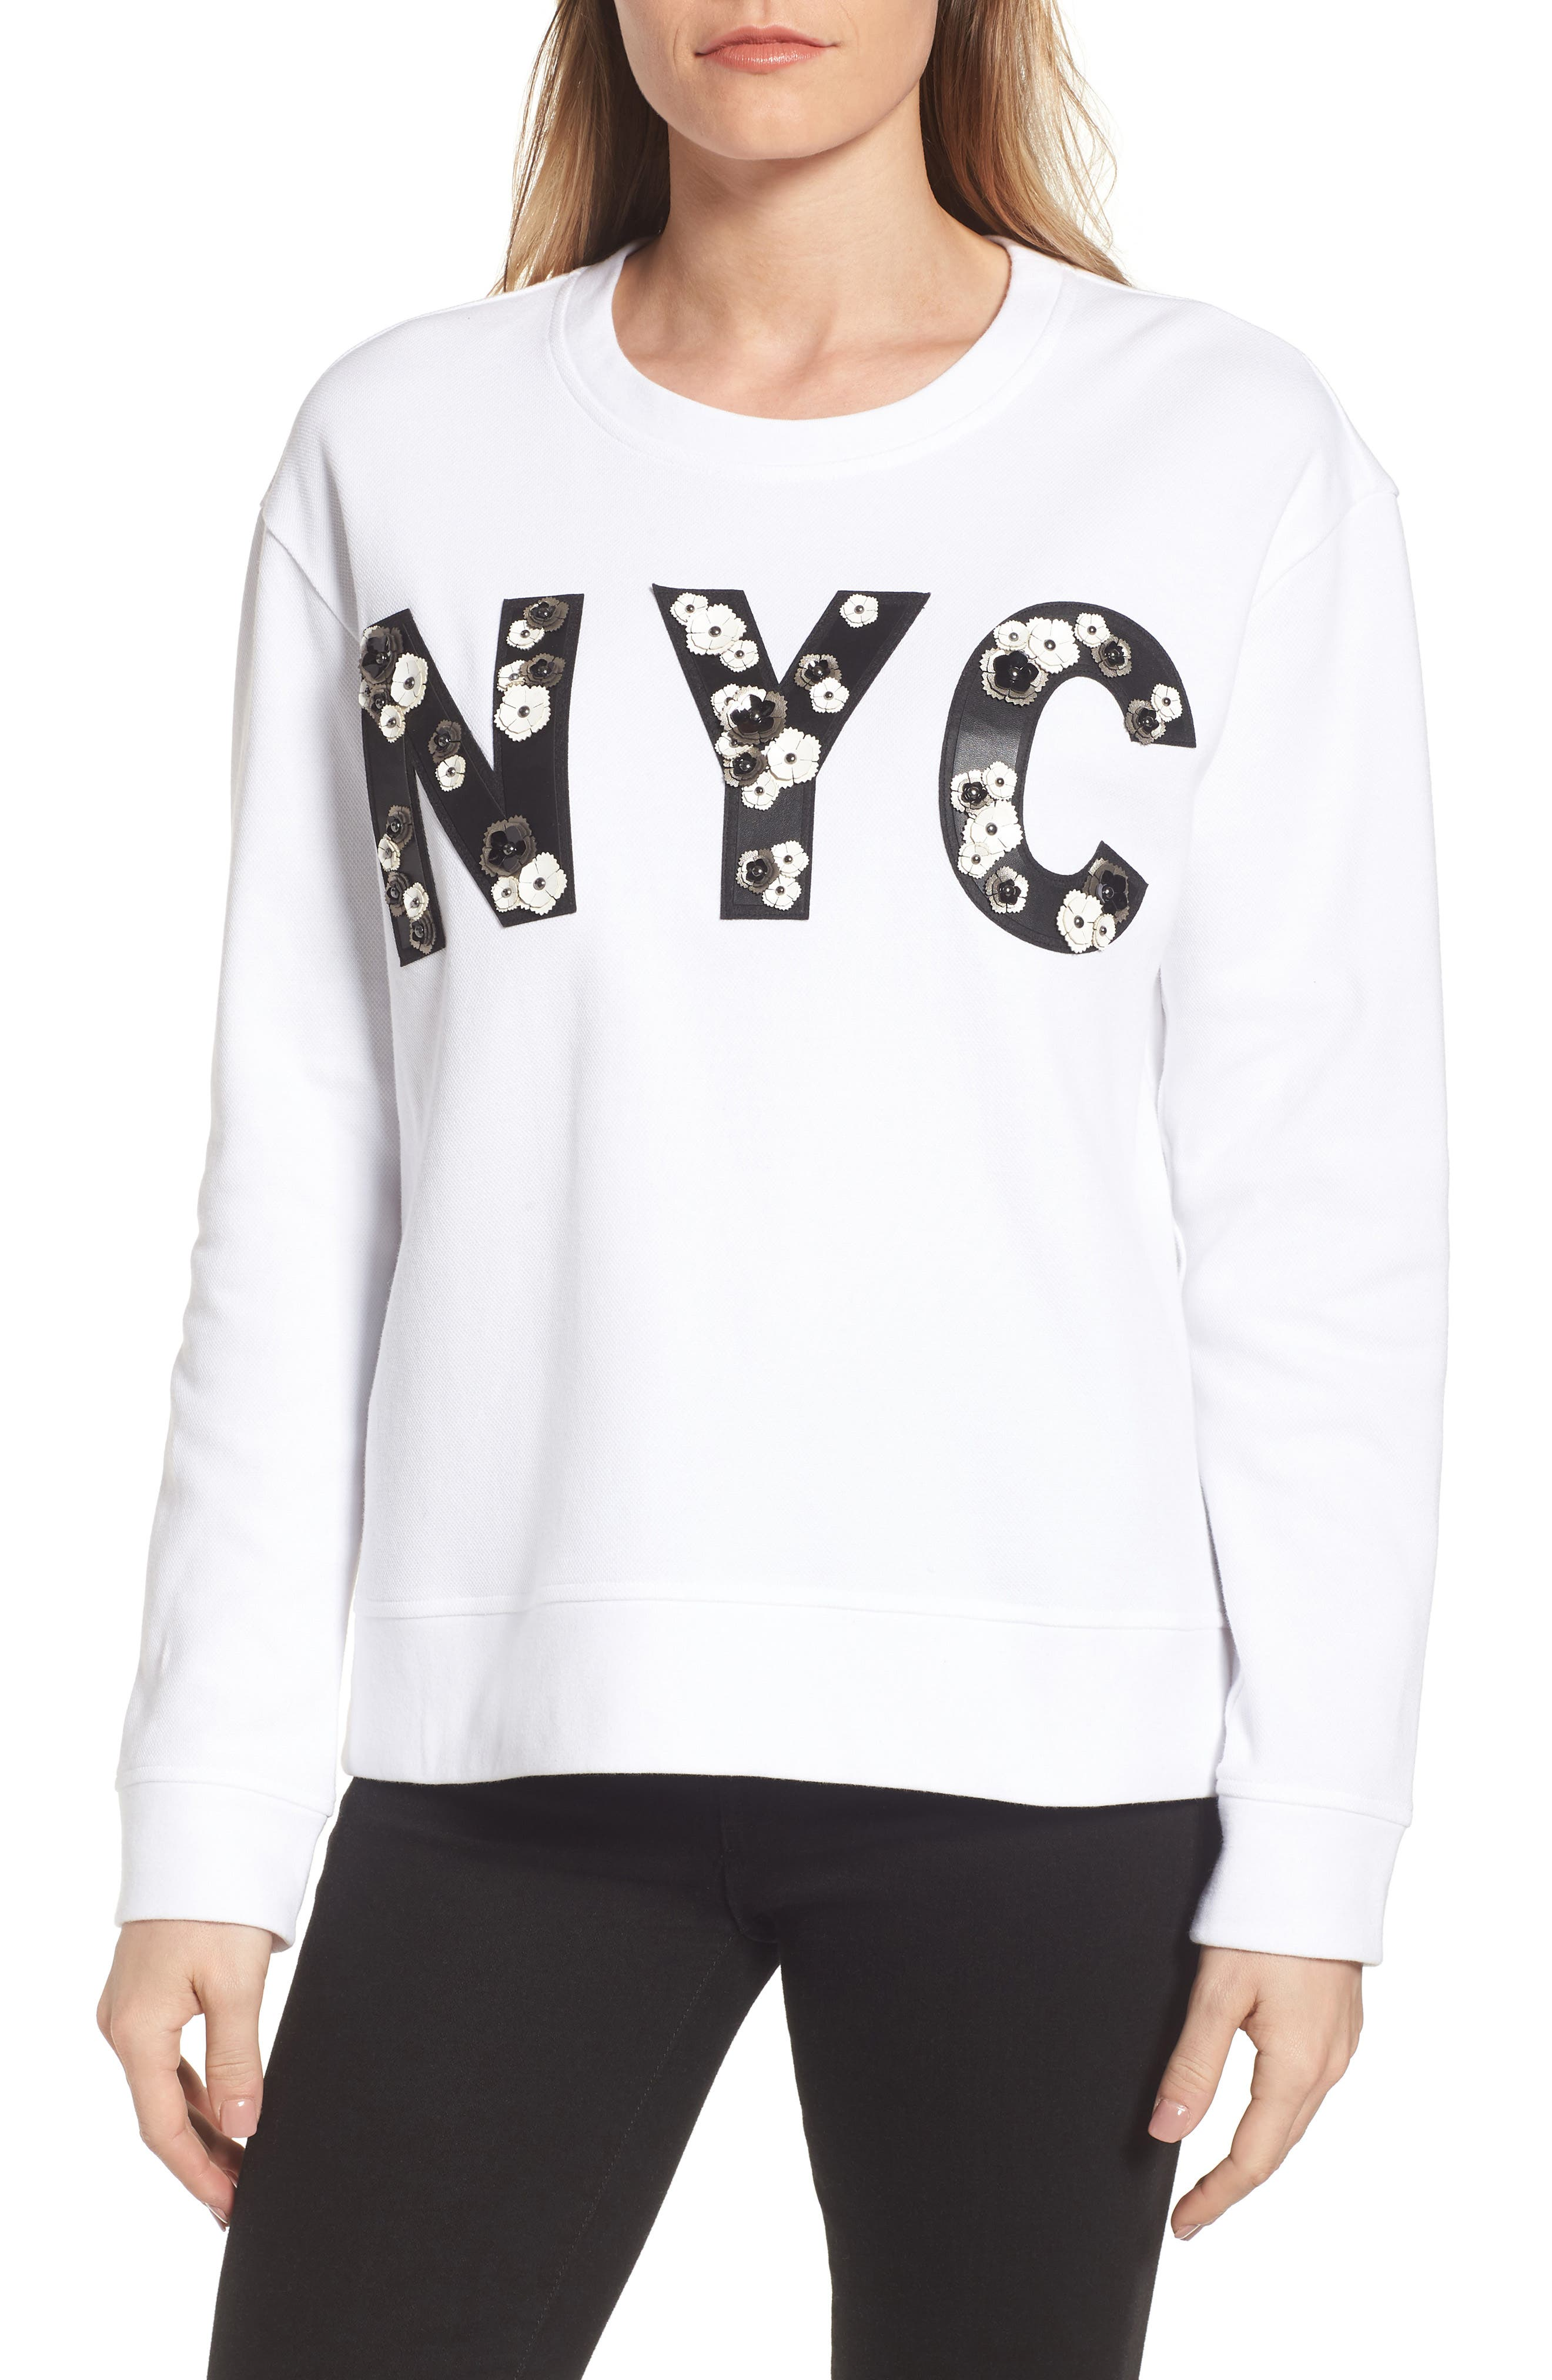 NYC Sweatshirt,                         Main,                         color, White